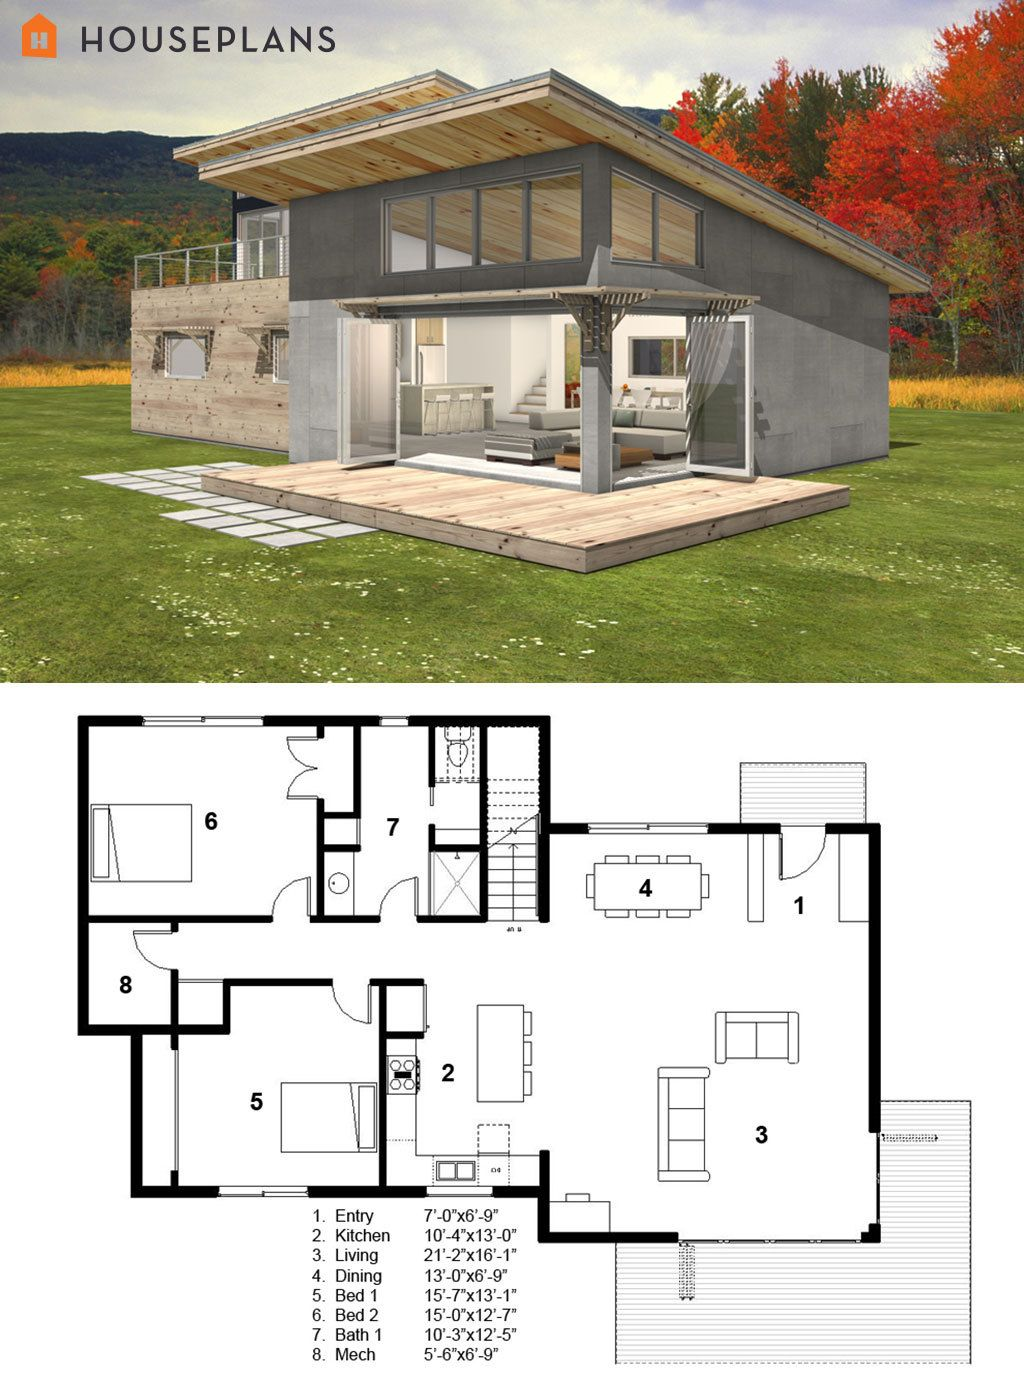 Small modern cabin house plan by freegreen energy for Energy efficient farmhouse plans